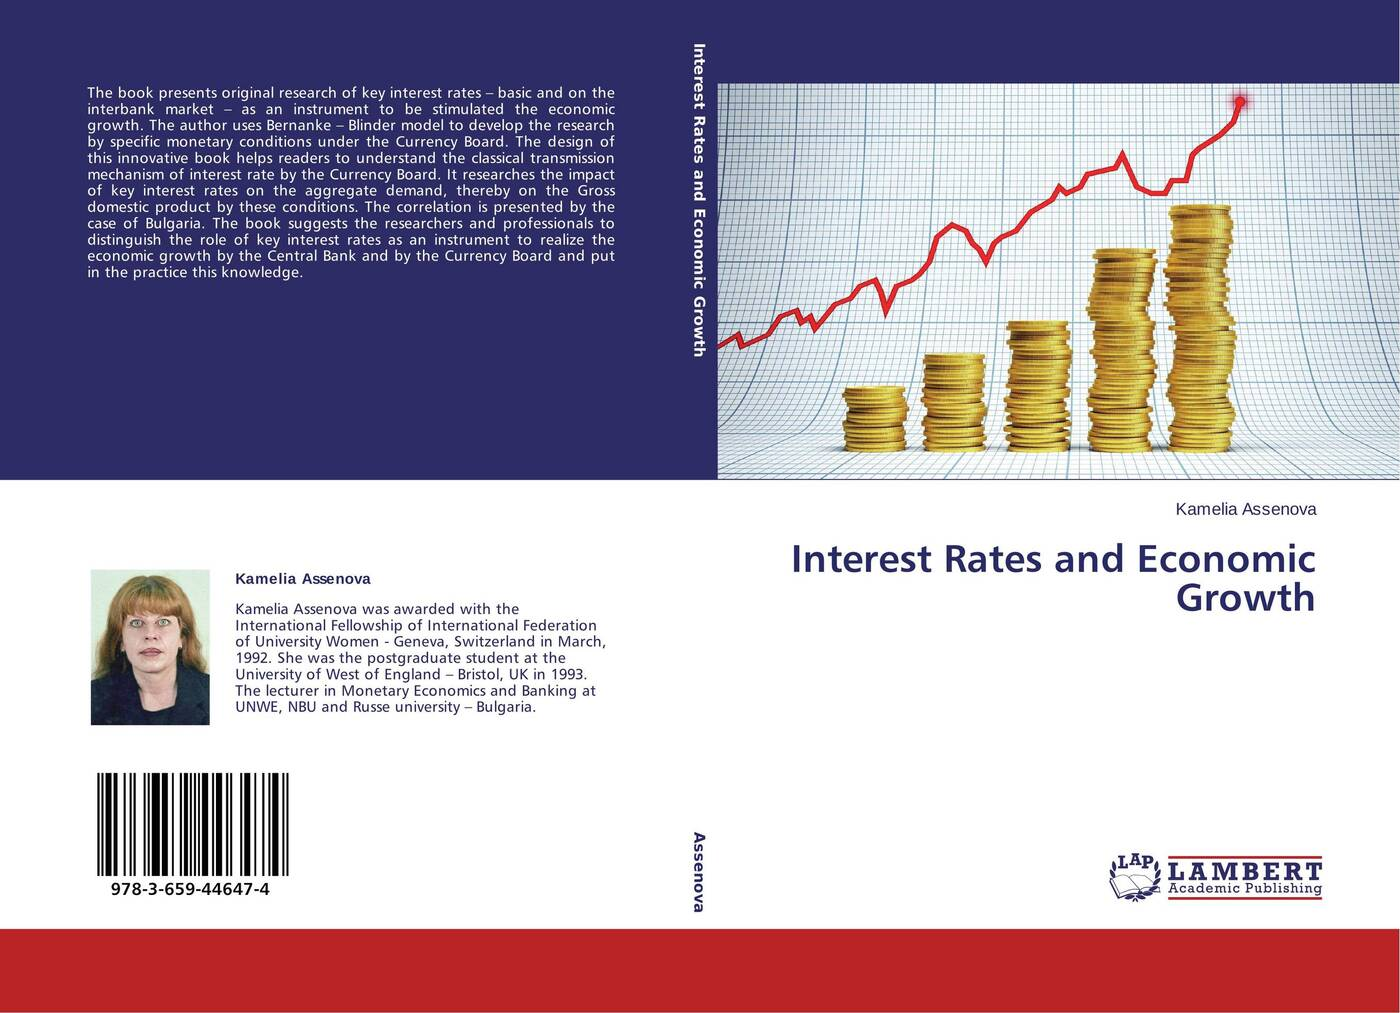 Kamelia Assenova Interest Rates and Economic Growth assessment of interest rates in see countries during crisis